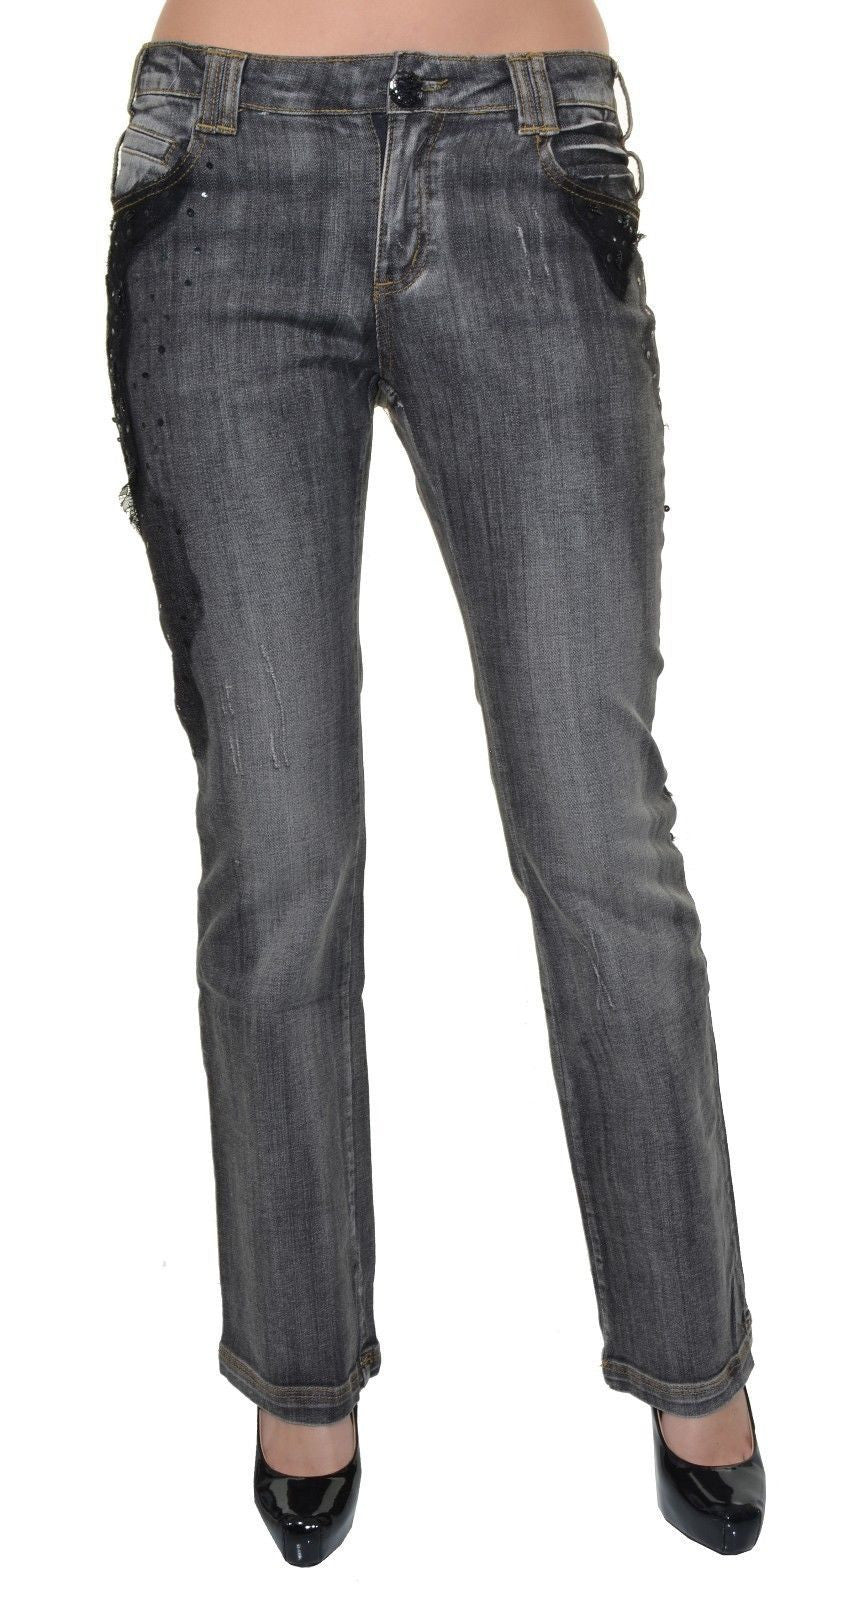 Womens Embellished Narrow Boot Jeans,Jeans,Newport News - Discount Divas